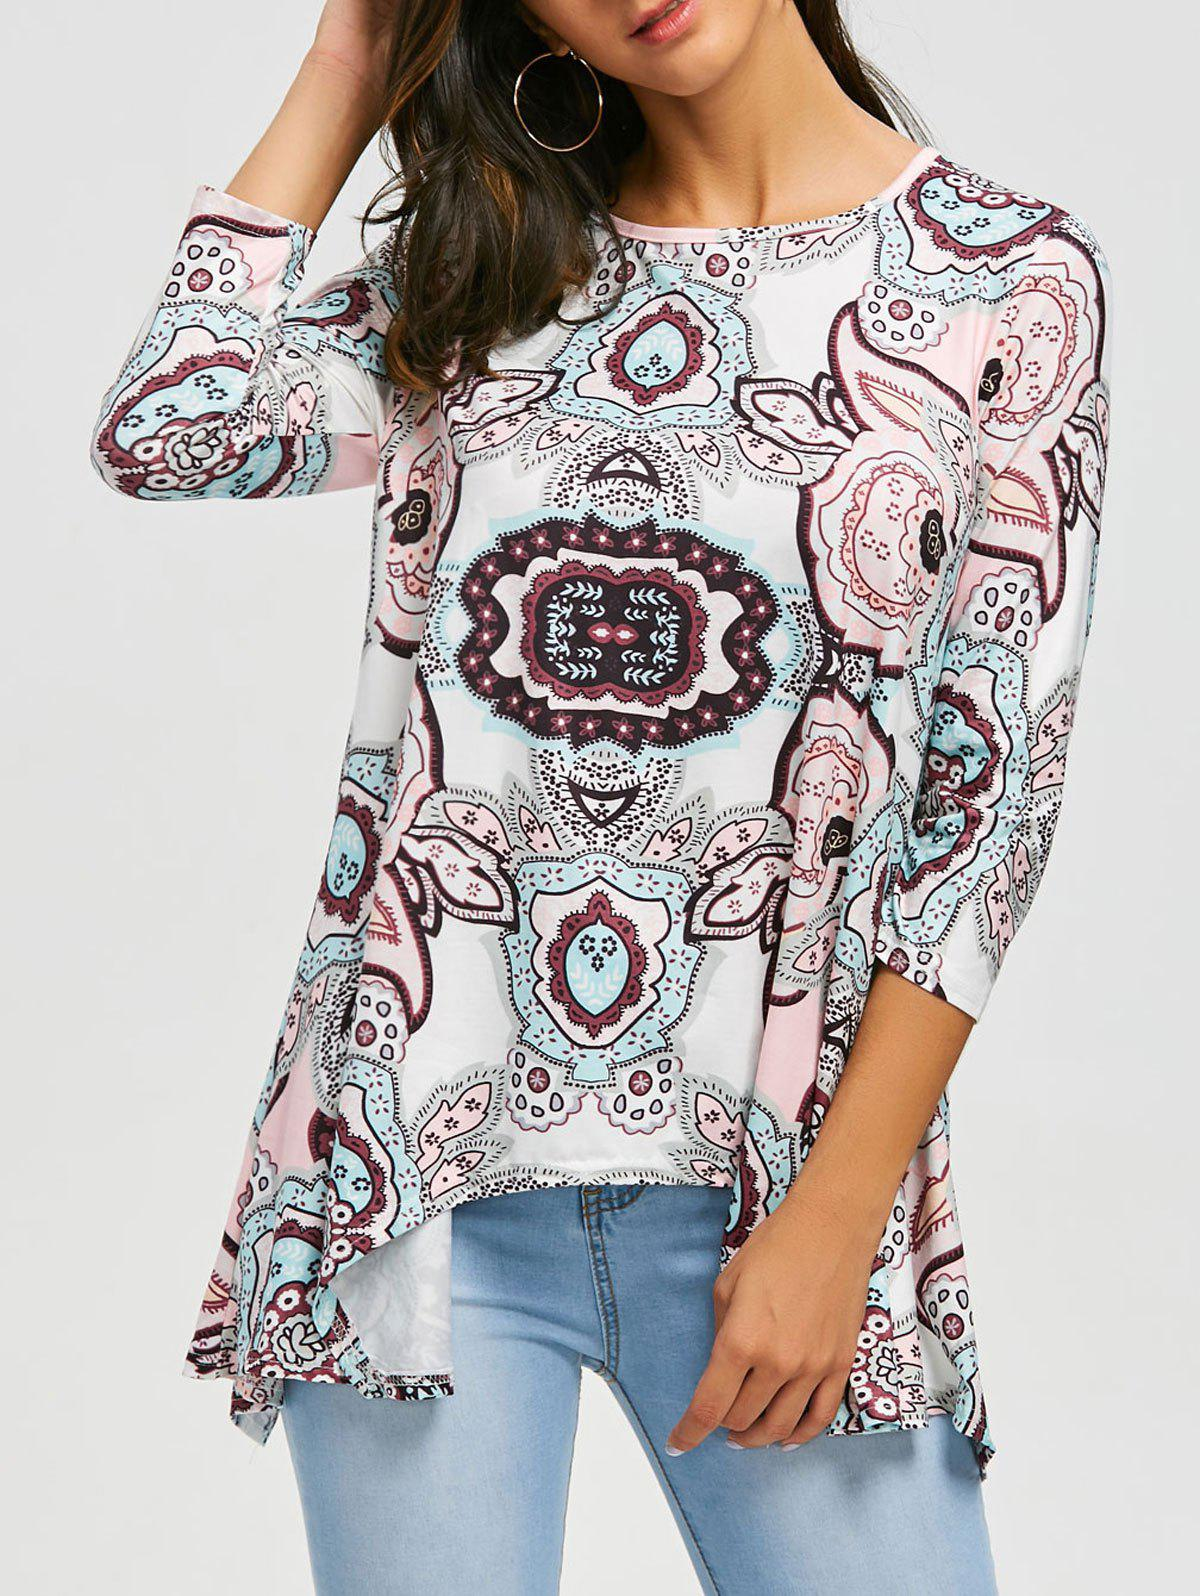 Asymmetric Print Tunic Top - PINK L